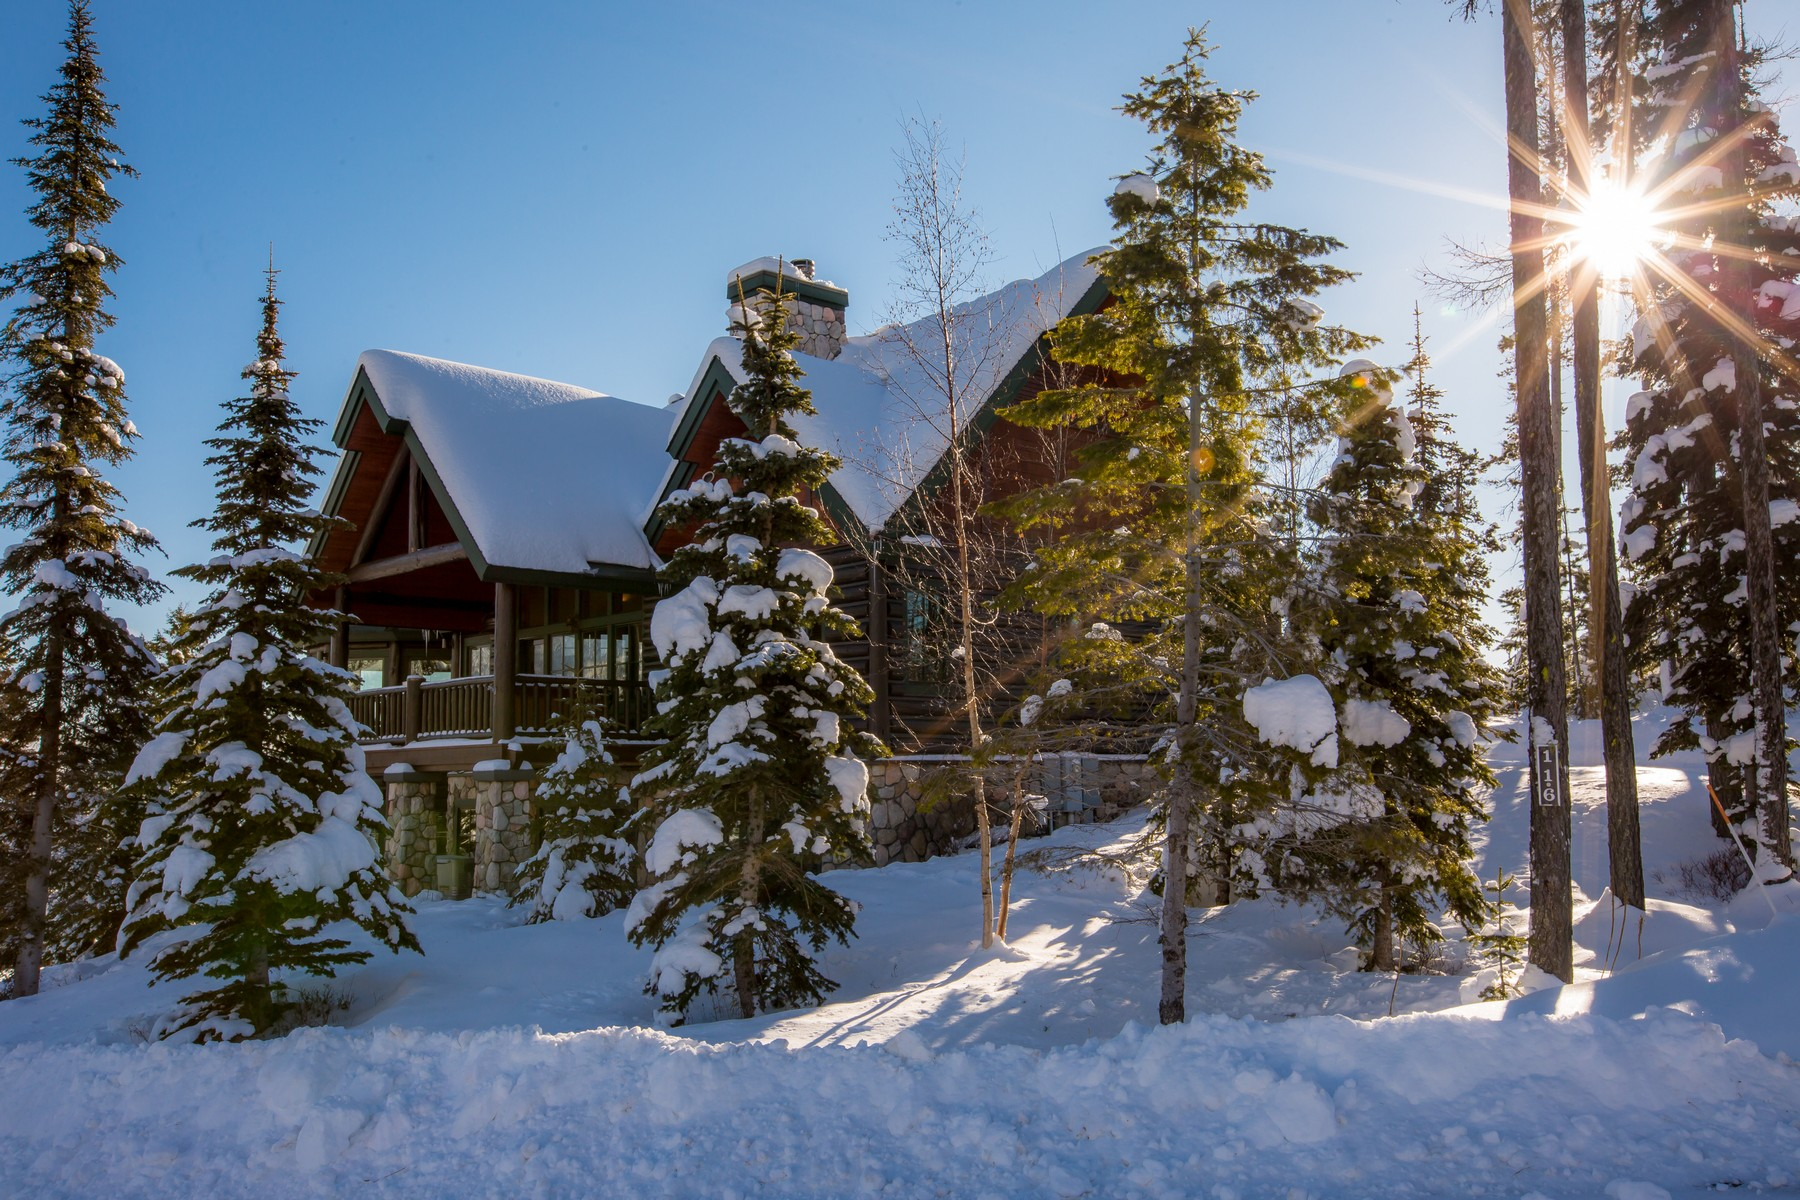 Additional photo for property listing at 116 Ridge Top Dr , Whitefish, MT 59937 116  Ridge Top Dr Whitefish, Montana 59937 United States